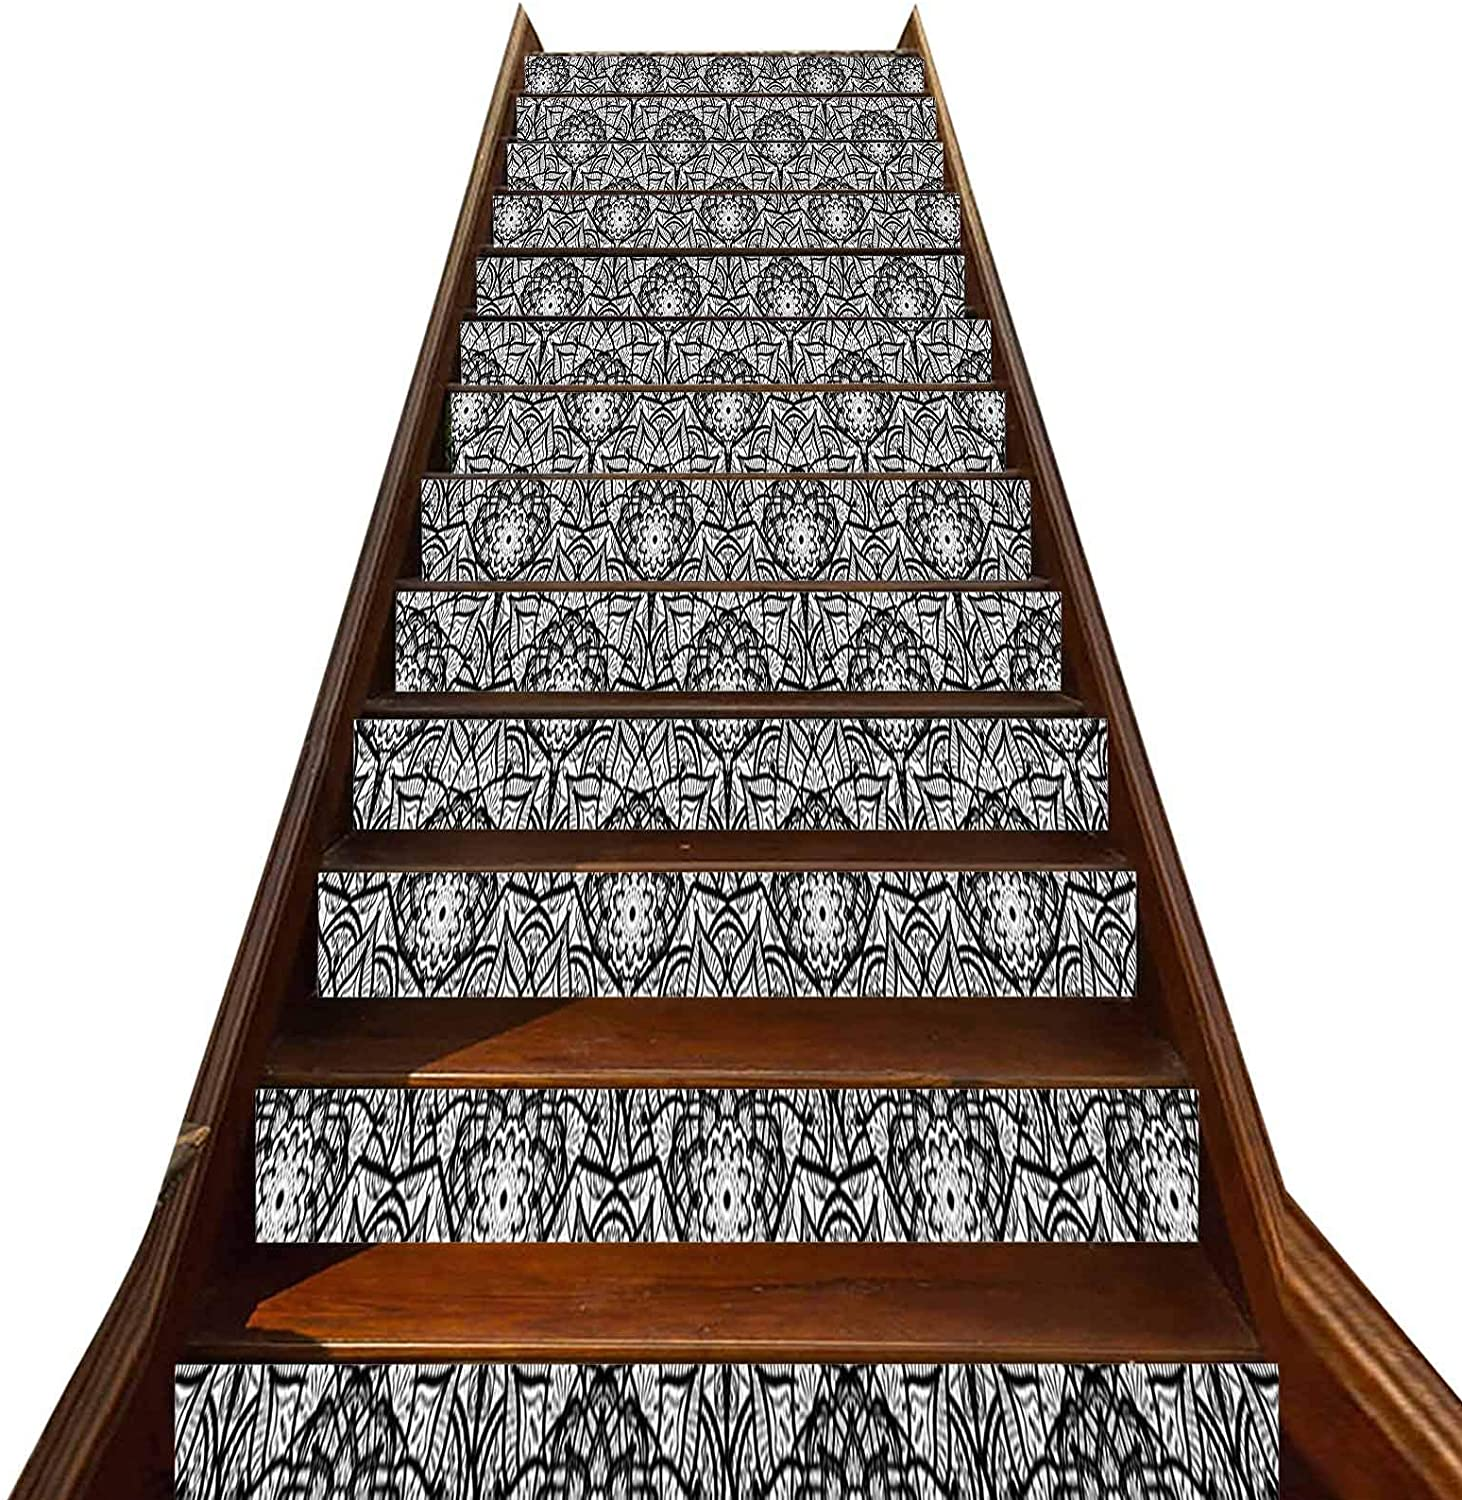 3D Black and White Pattern Stair Stickers 13 PCS,Hand Drawn Flower Pattern with Oriental Inspirations Lace Style Petals Vinyl Self-Adhesive Stair Risers Stickers,for Hotel Home Staircase Riser Decor